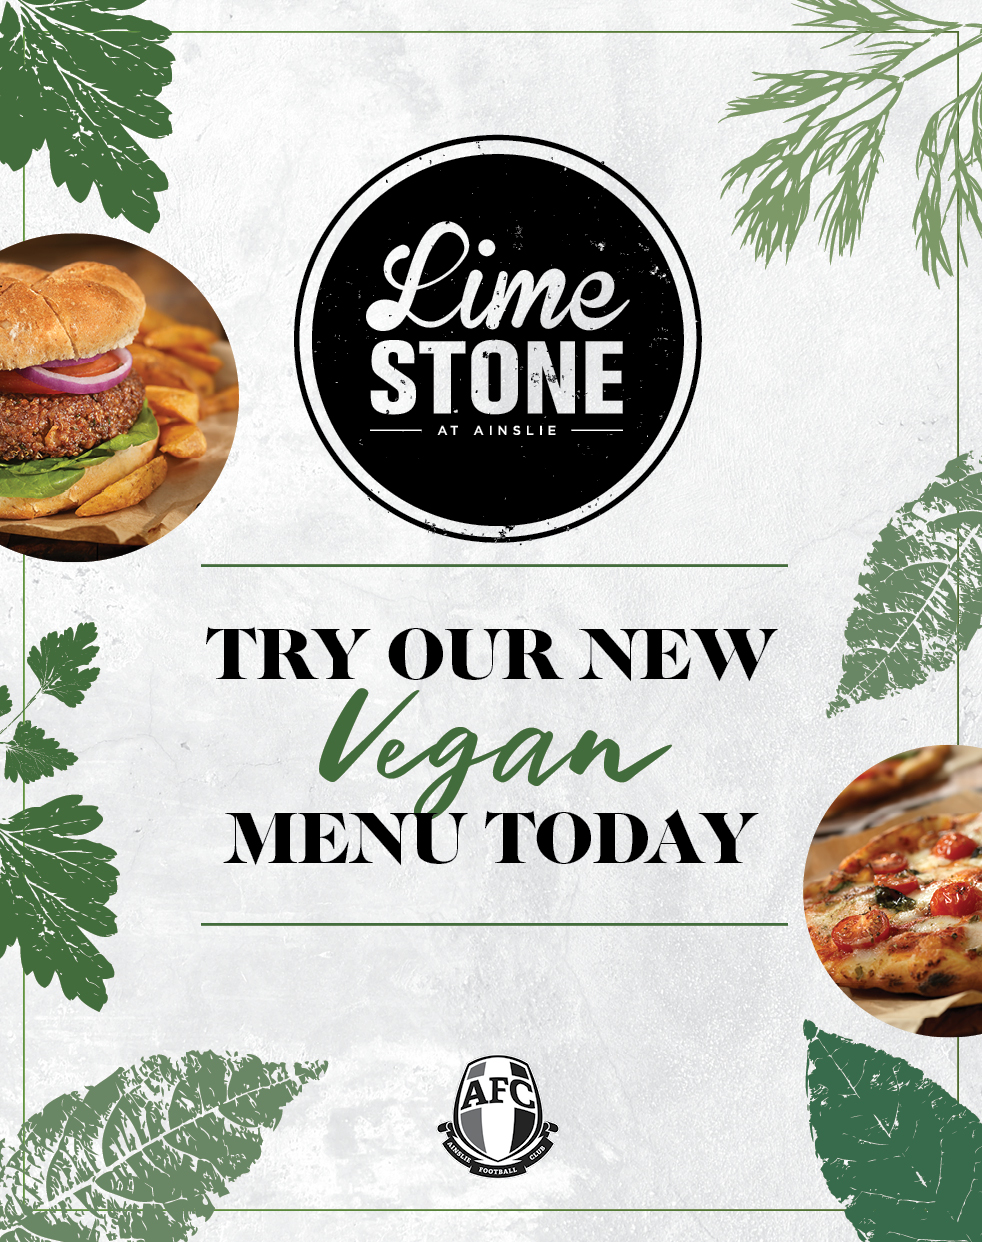 Limestone Kitchen - Try our new vegan menu today